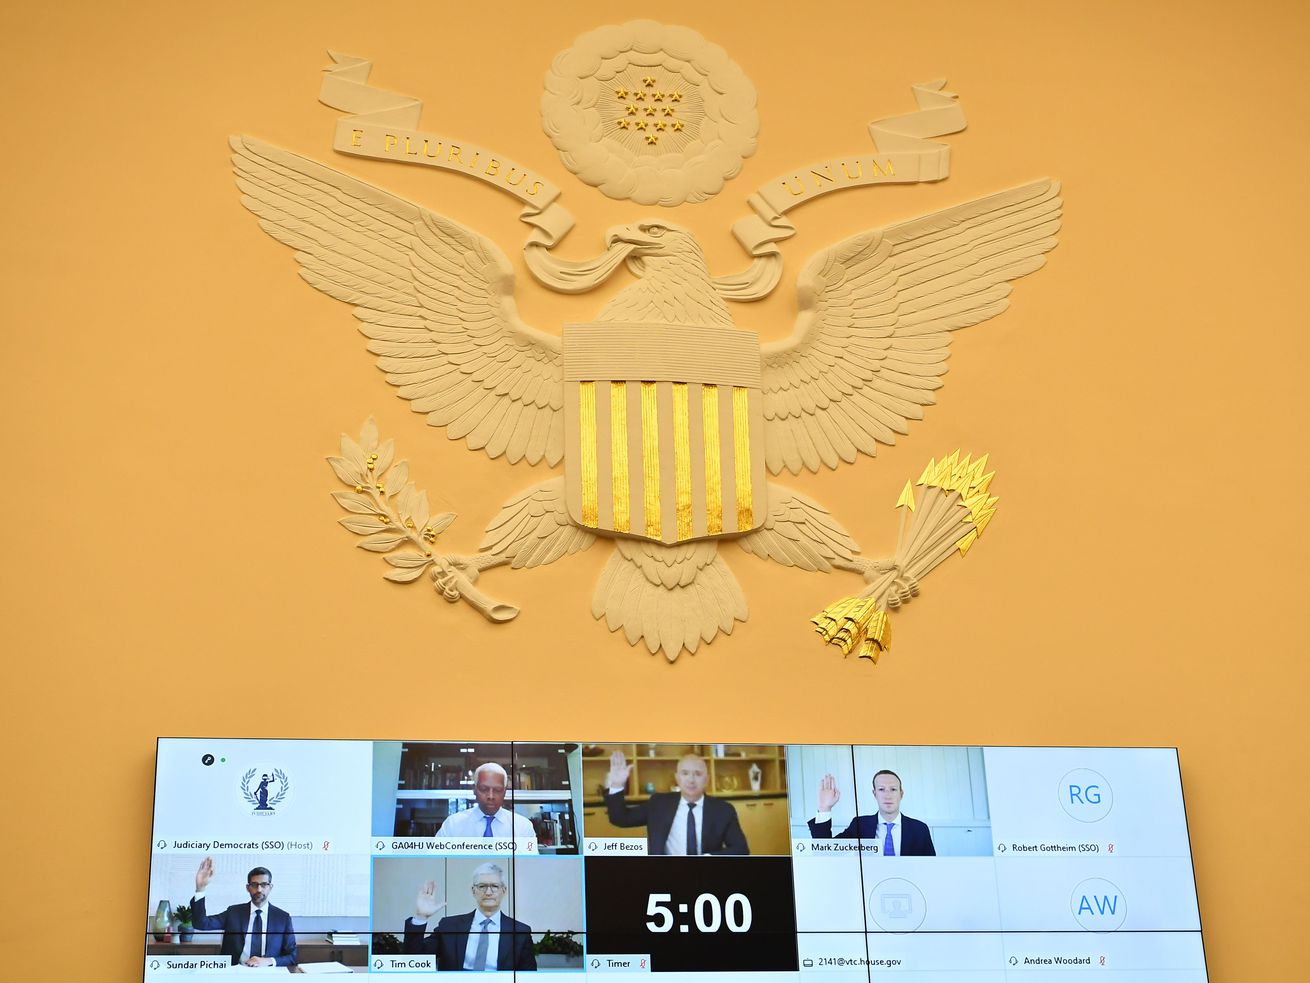 A screen with tech CEOs sits beneath the Great Seal of the United States.